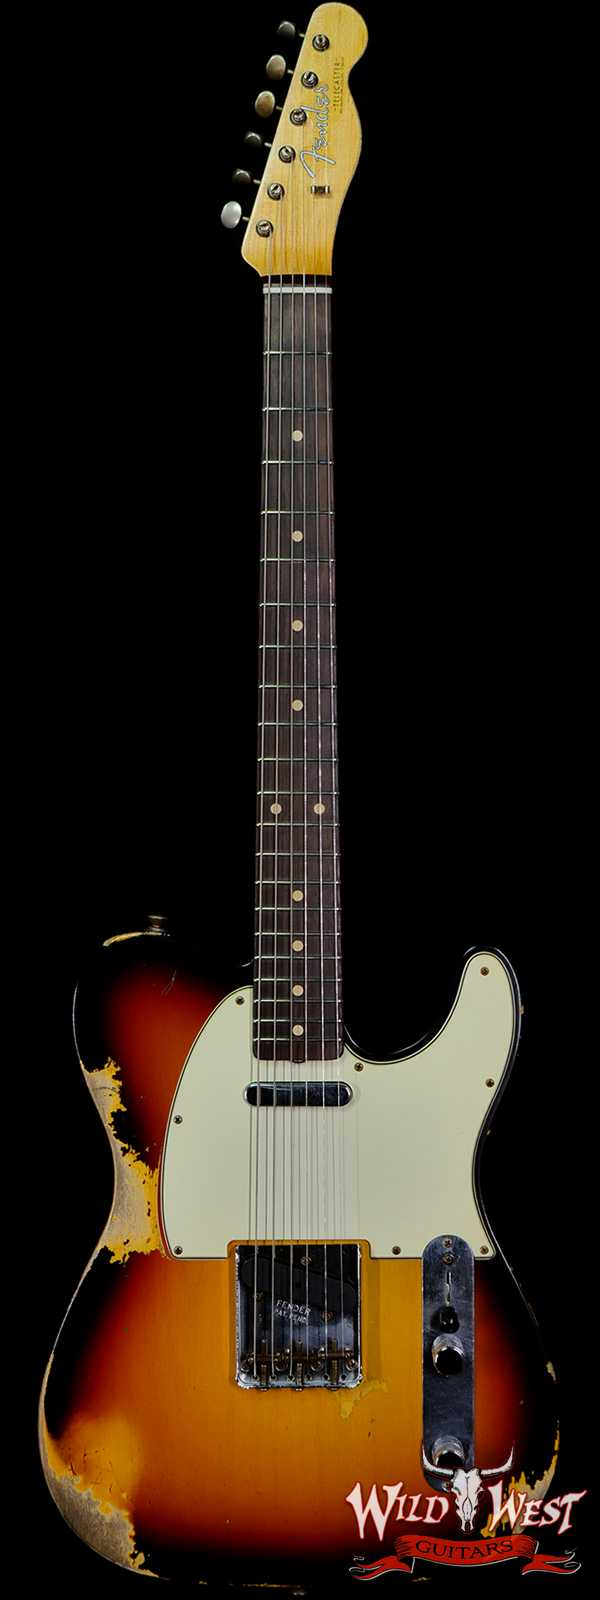 Fender Custom Shop 1961 Telecaster Heavy Relic Hand-Wound Pickups Painted Neck 3 Tone Sunburst